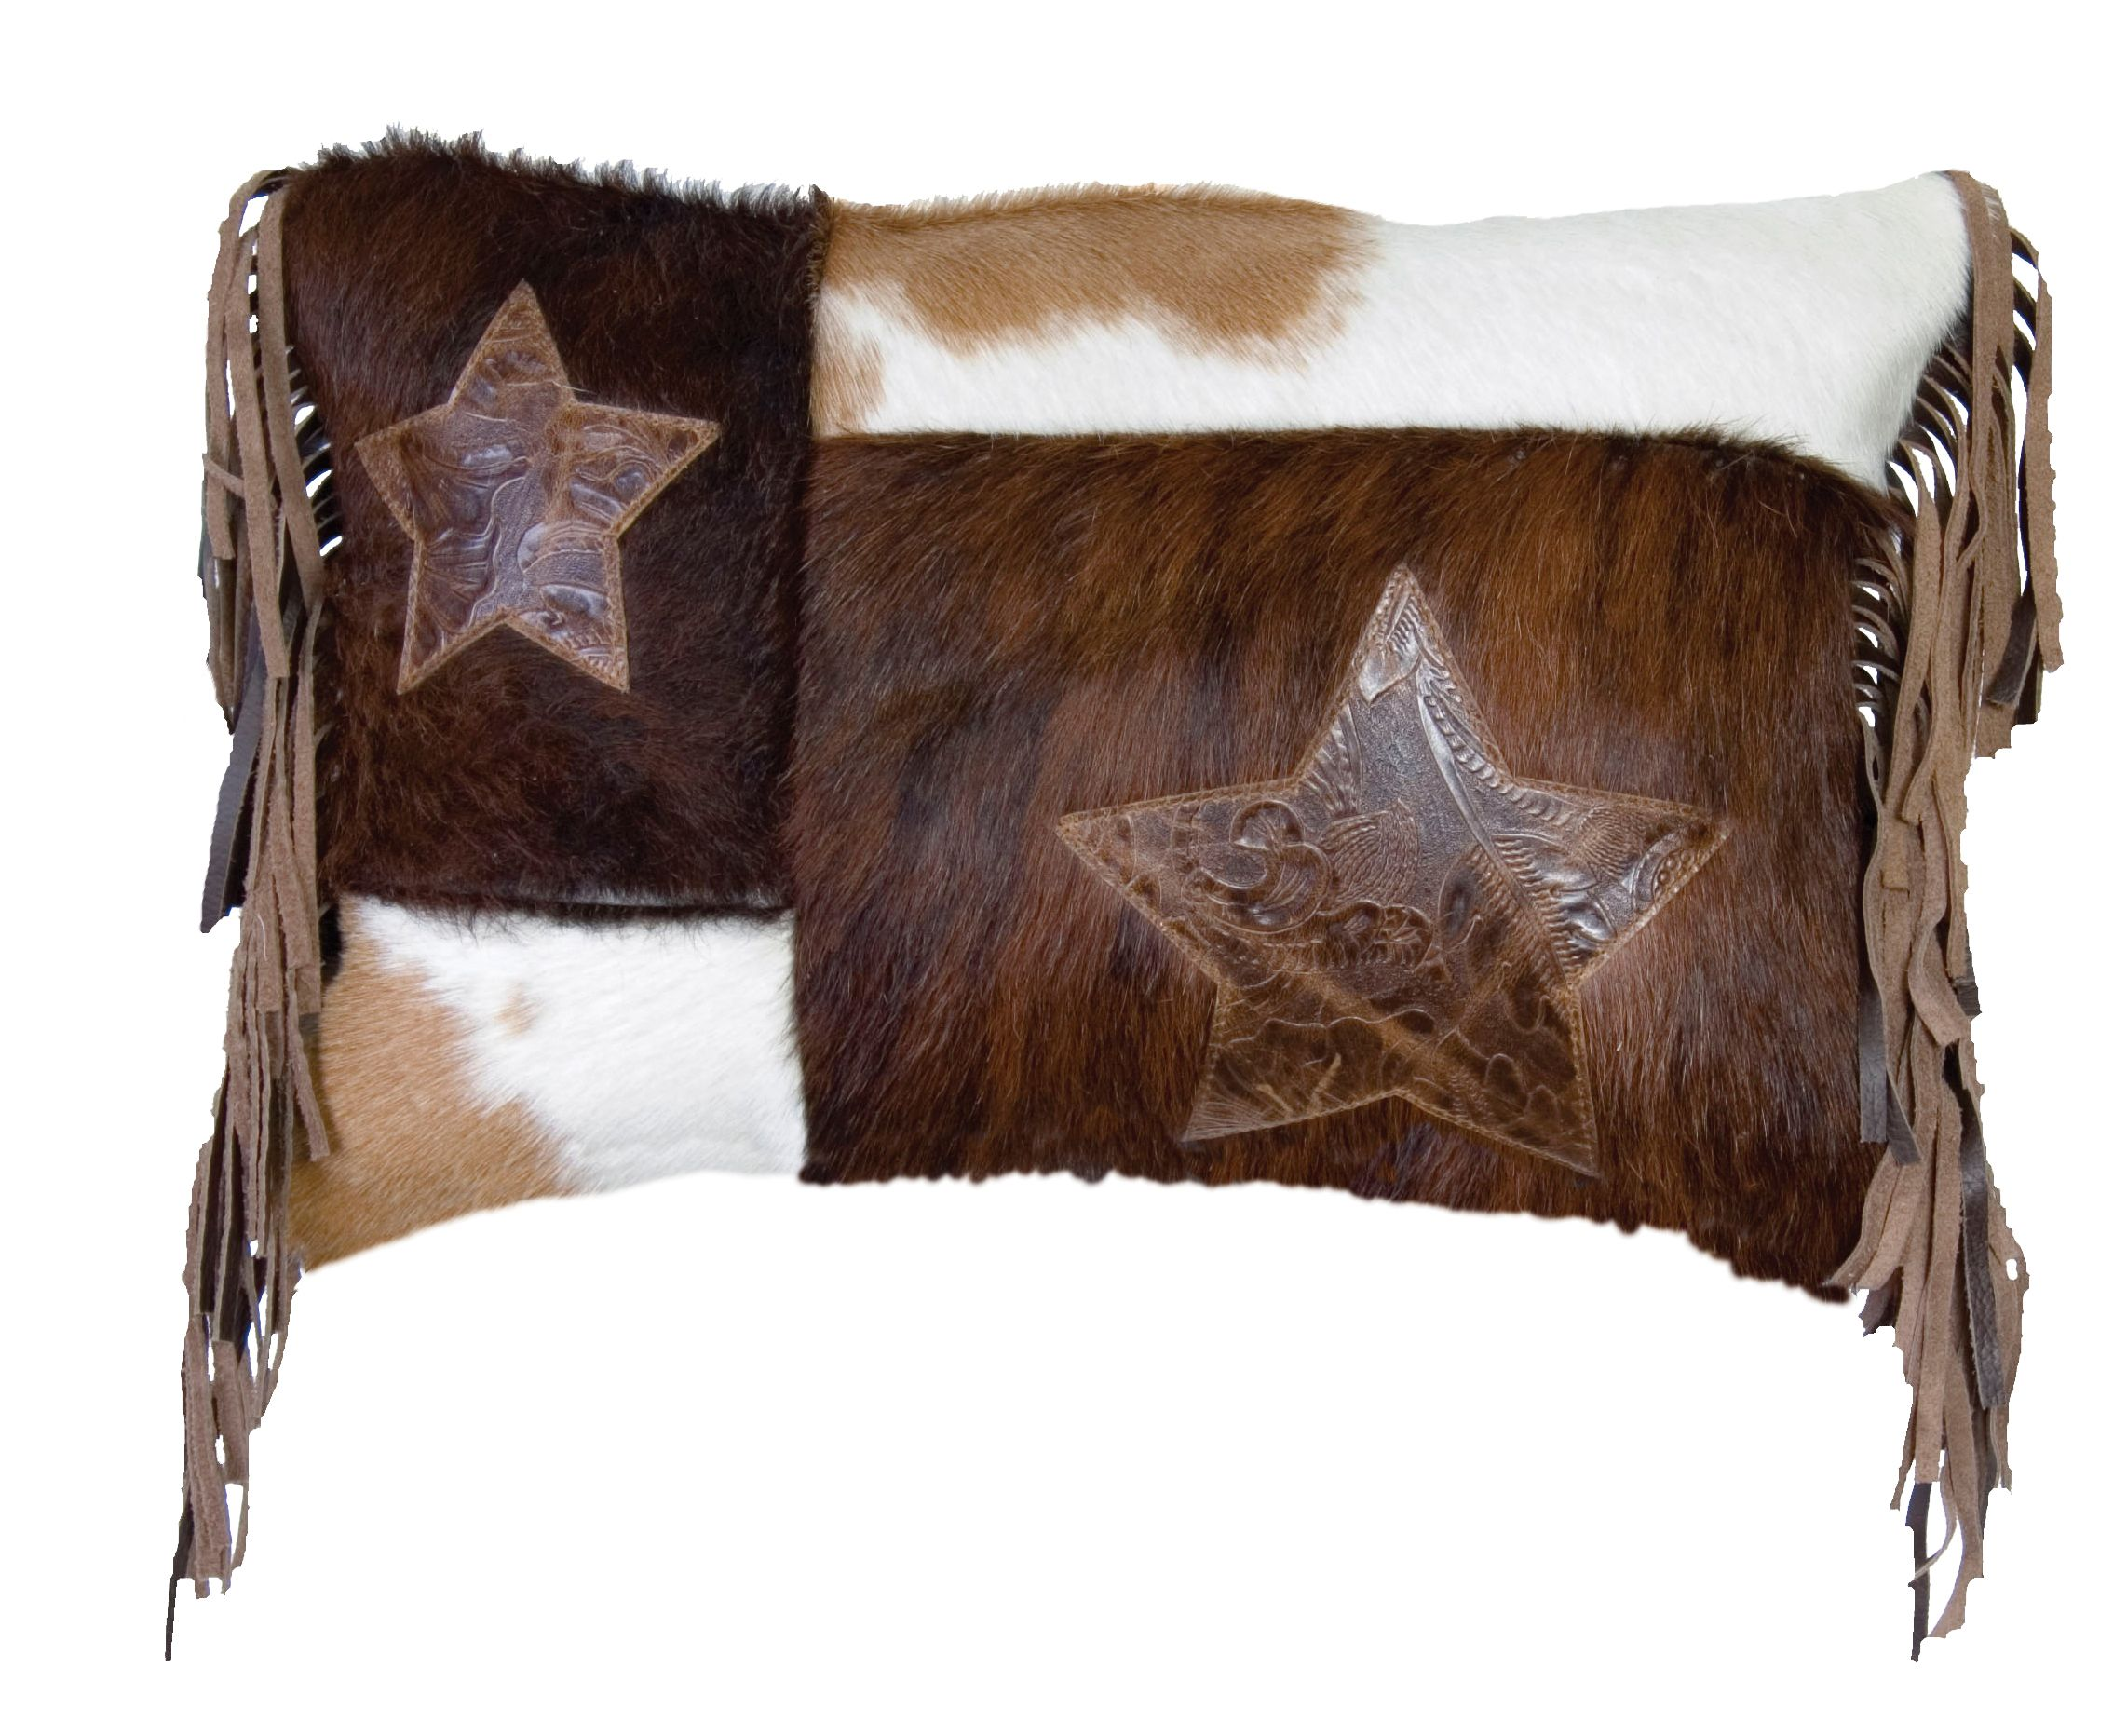 western people by throw zoom throwpillow bg pillow cowgirl pillows redbubble southwest works pegdoesart